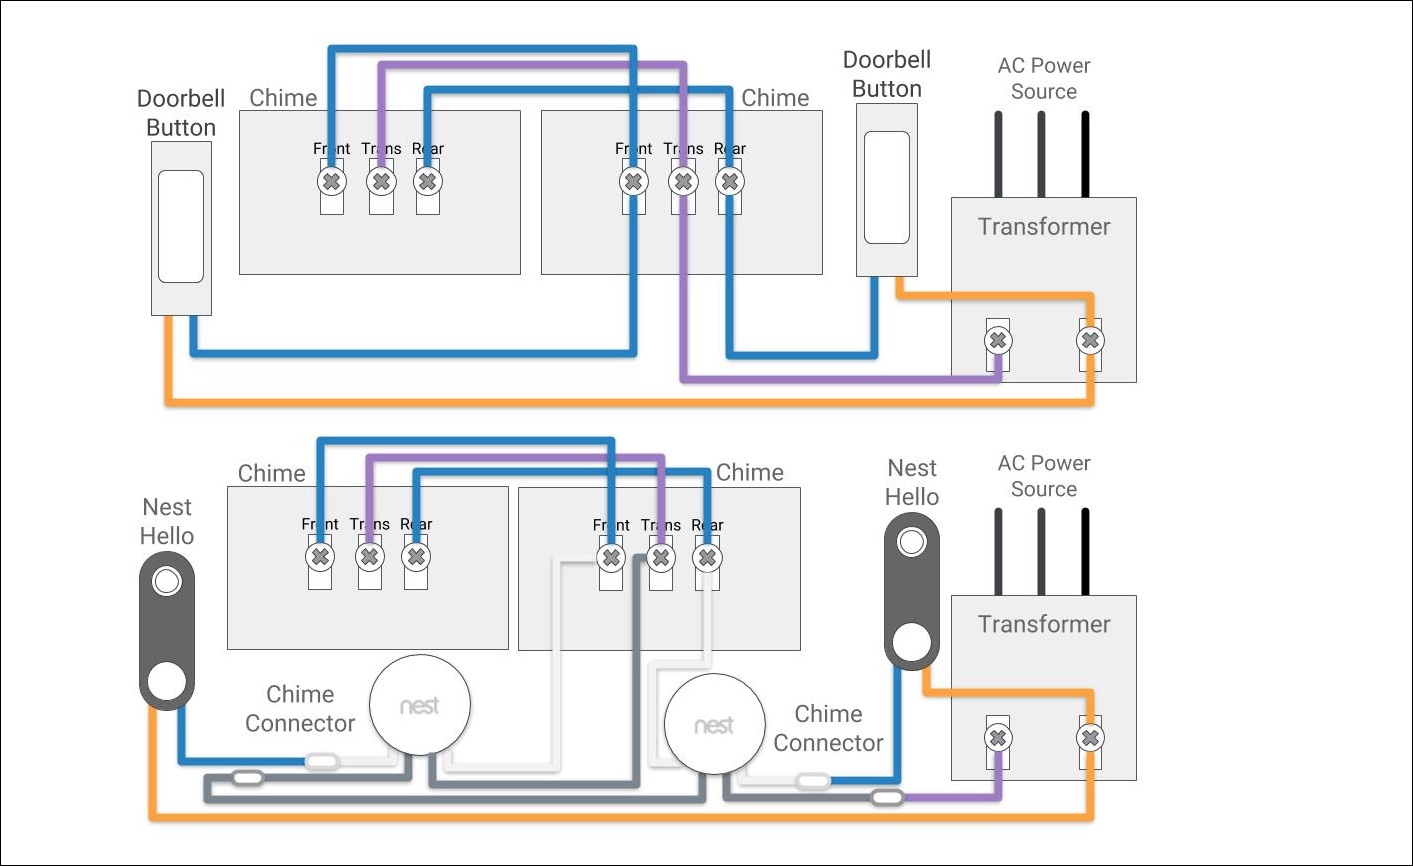 Doorbell Wiring Diagram One Chime from storage.googleapis.com